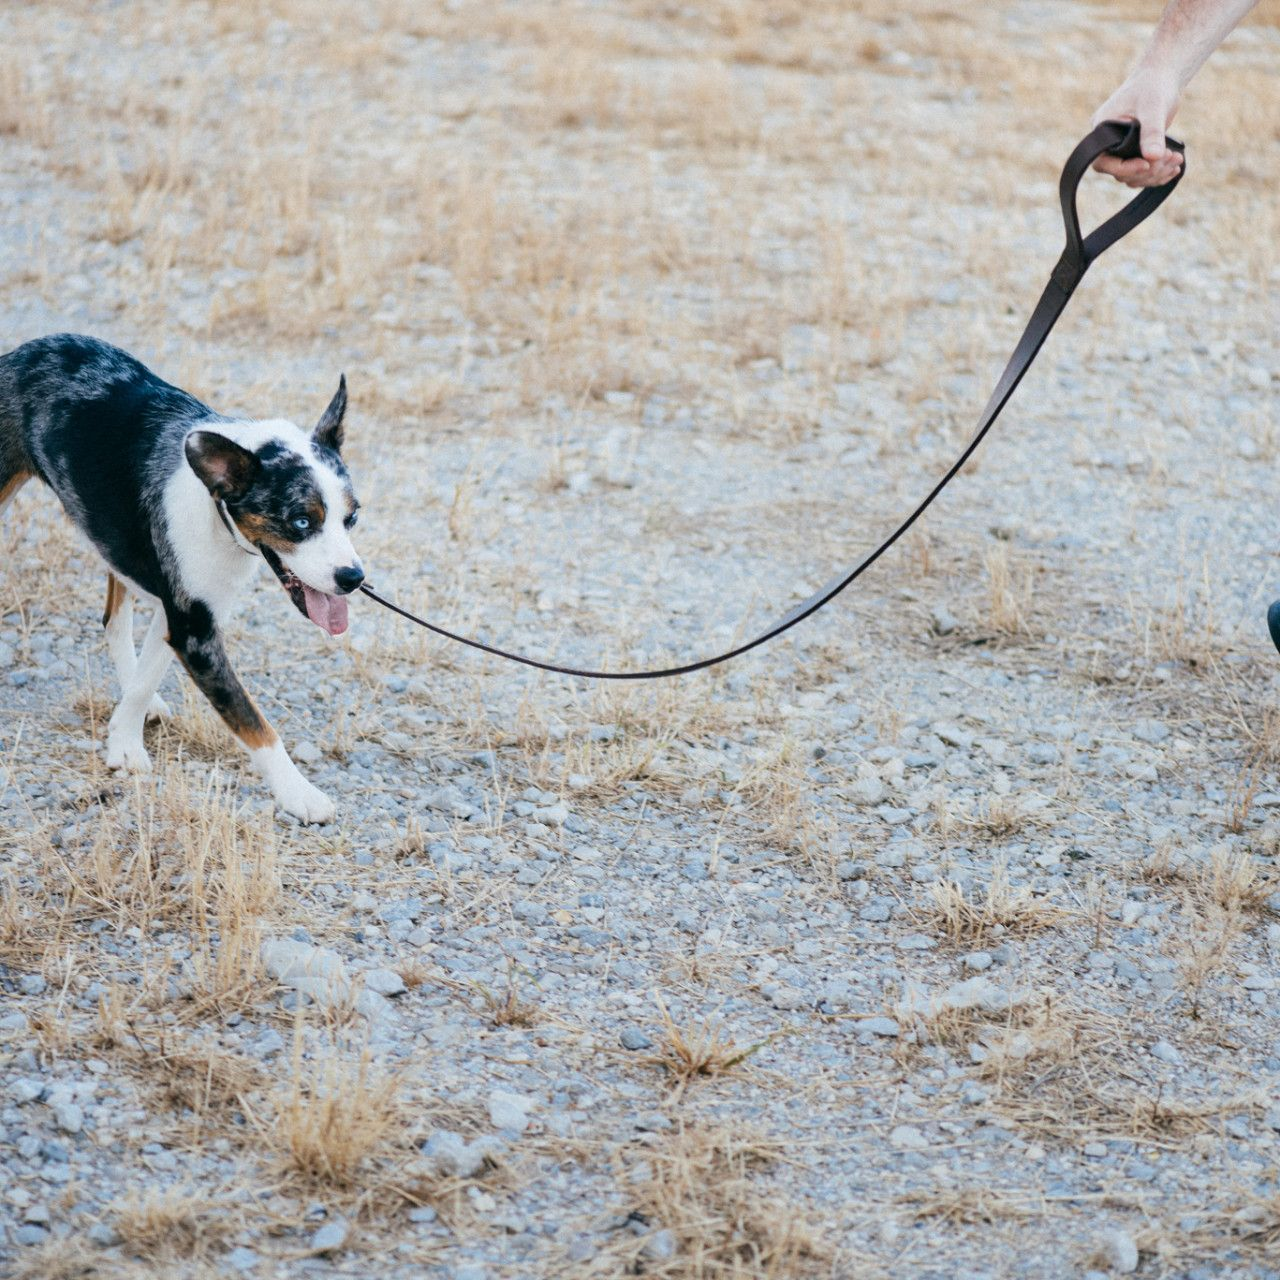 White-black dog with tongue out and leather dog leash in dark coffee brown leather in rocky terrain